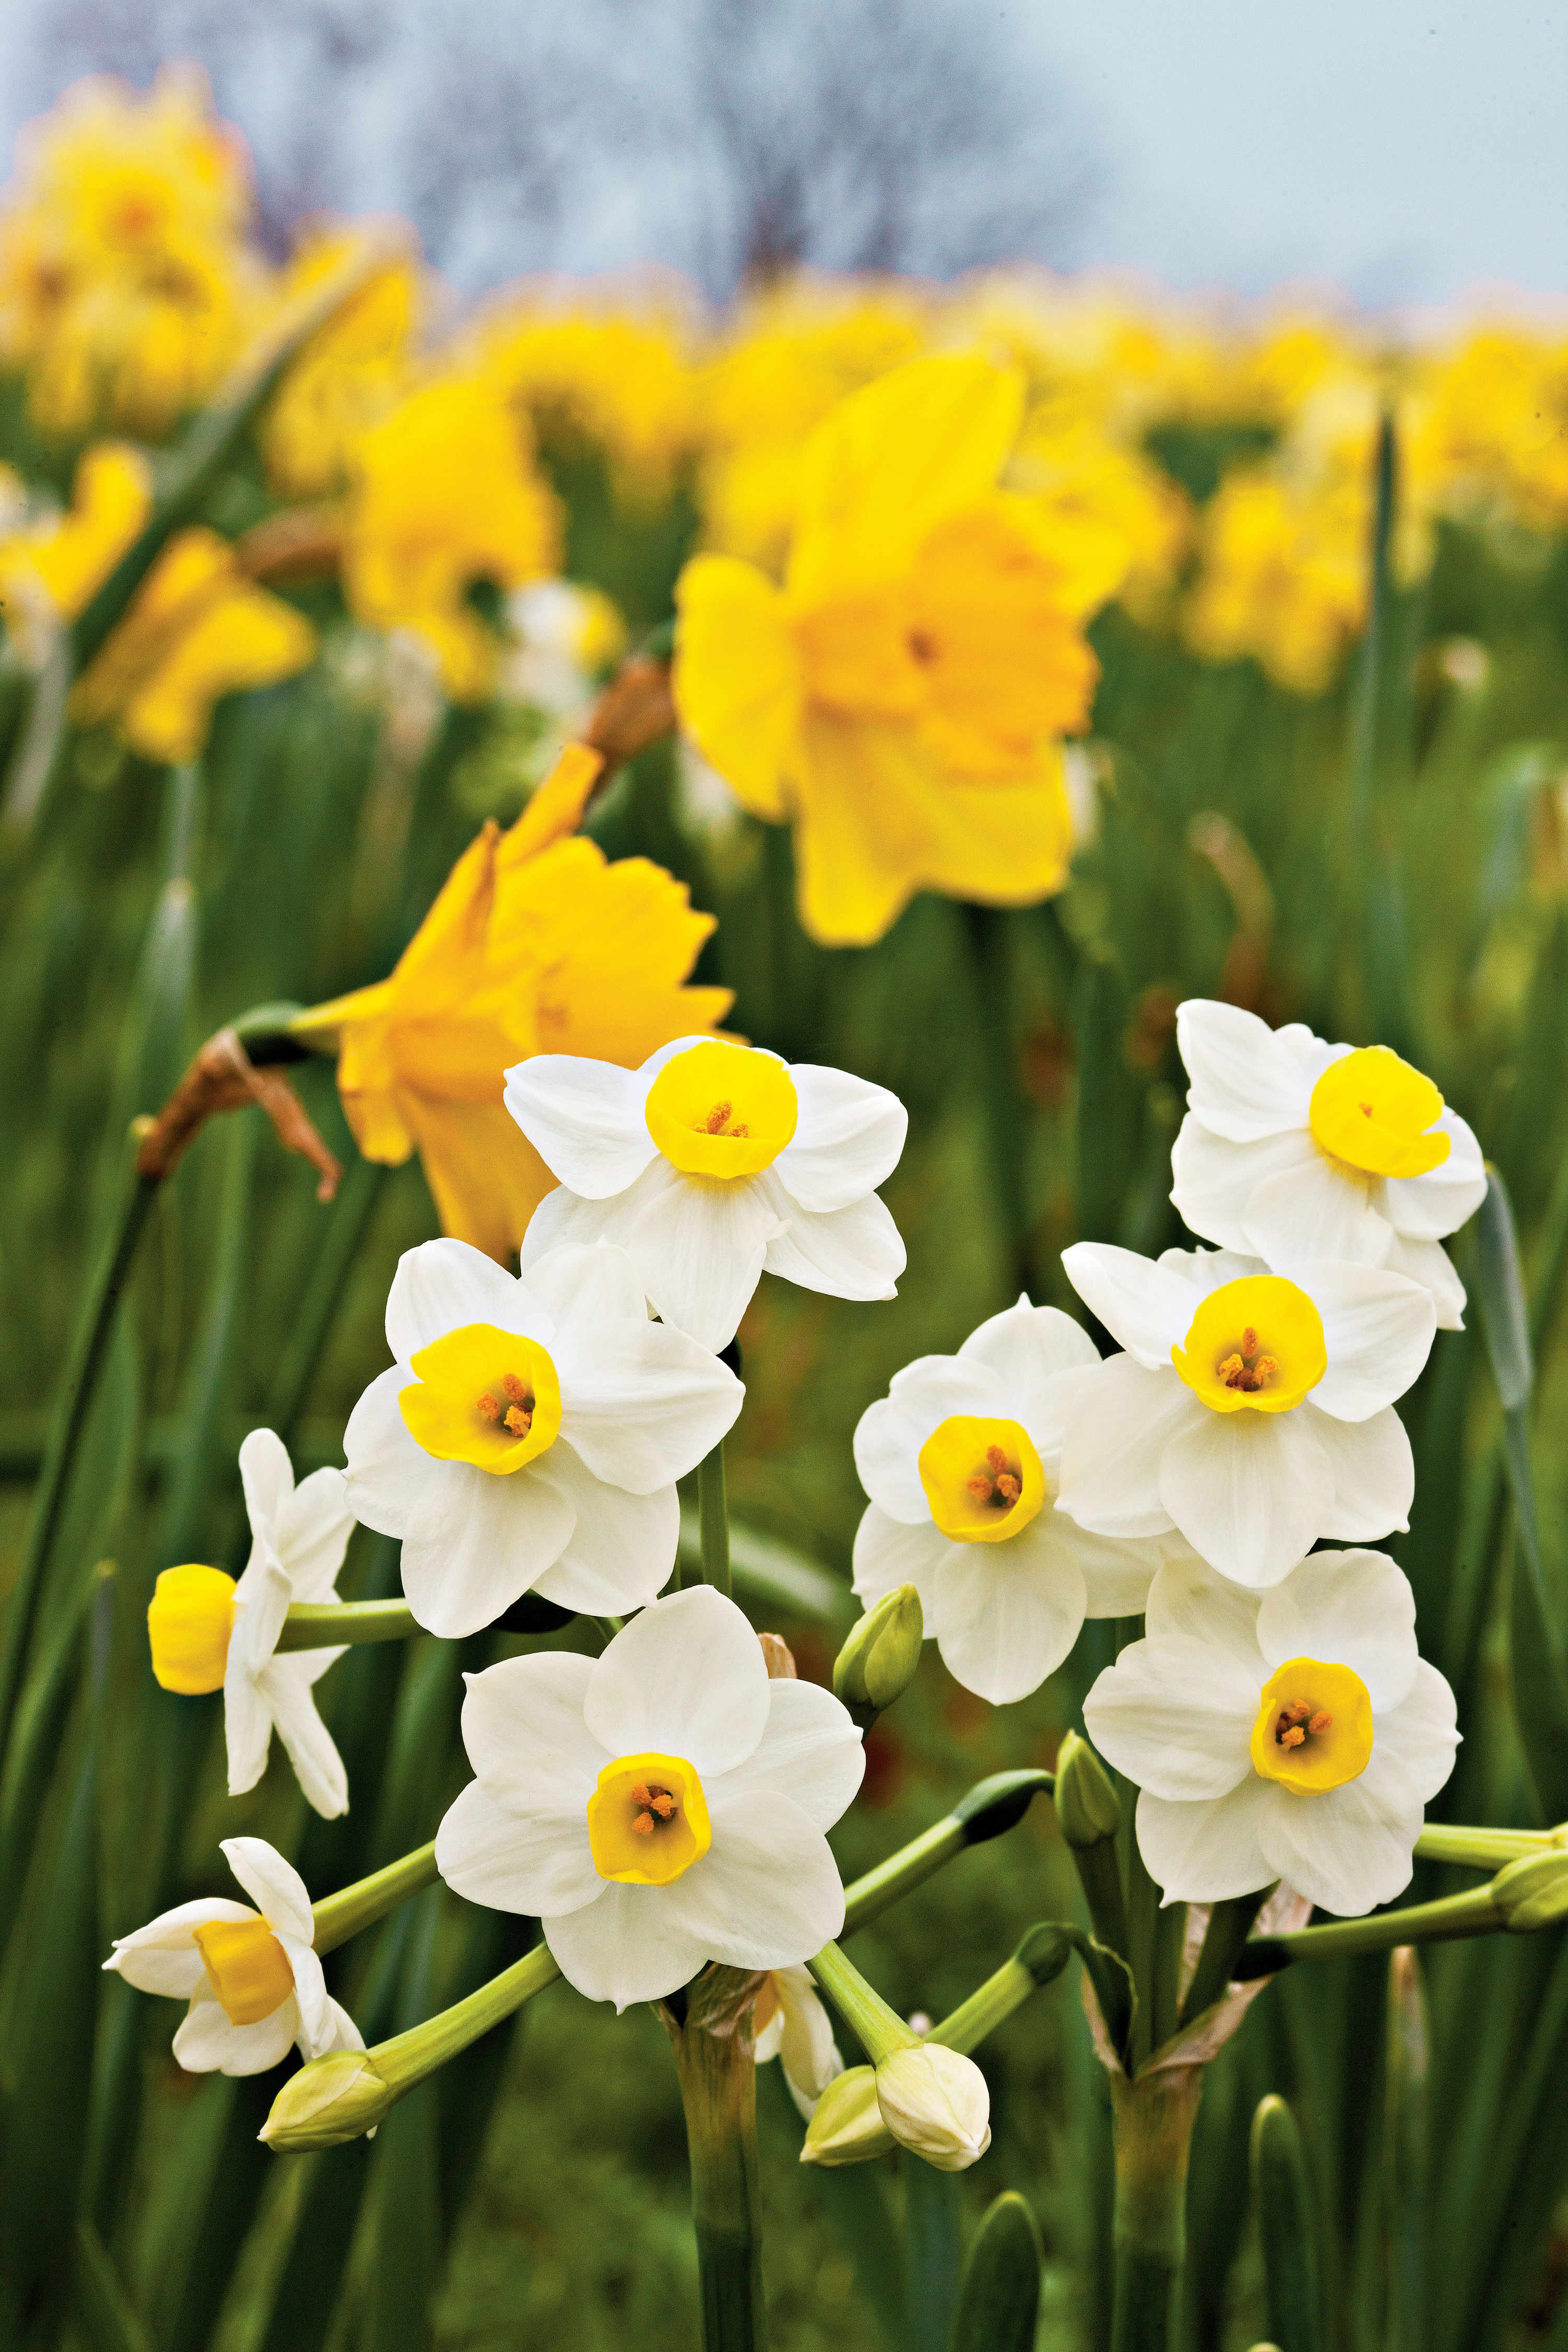 12 Things to Know about Daffodils